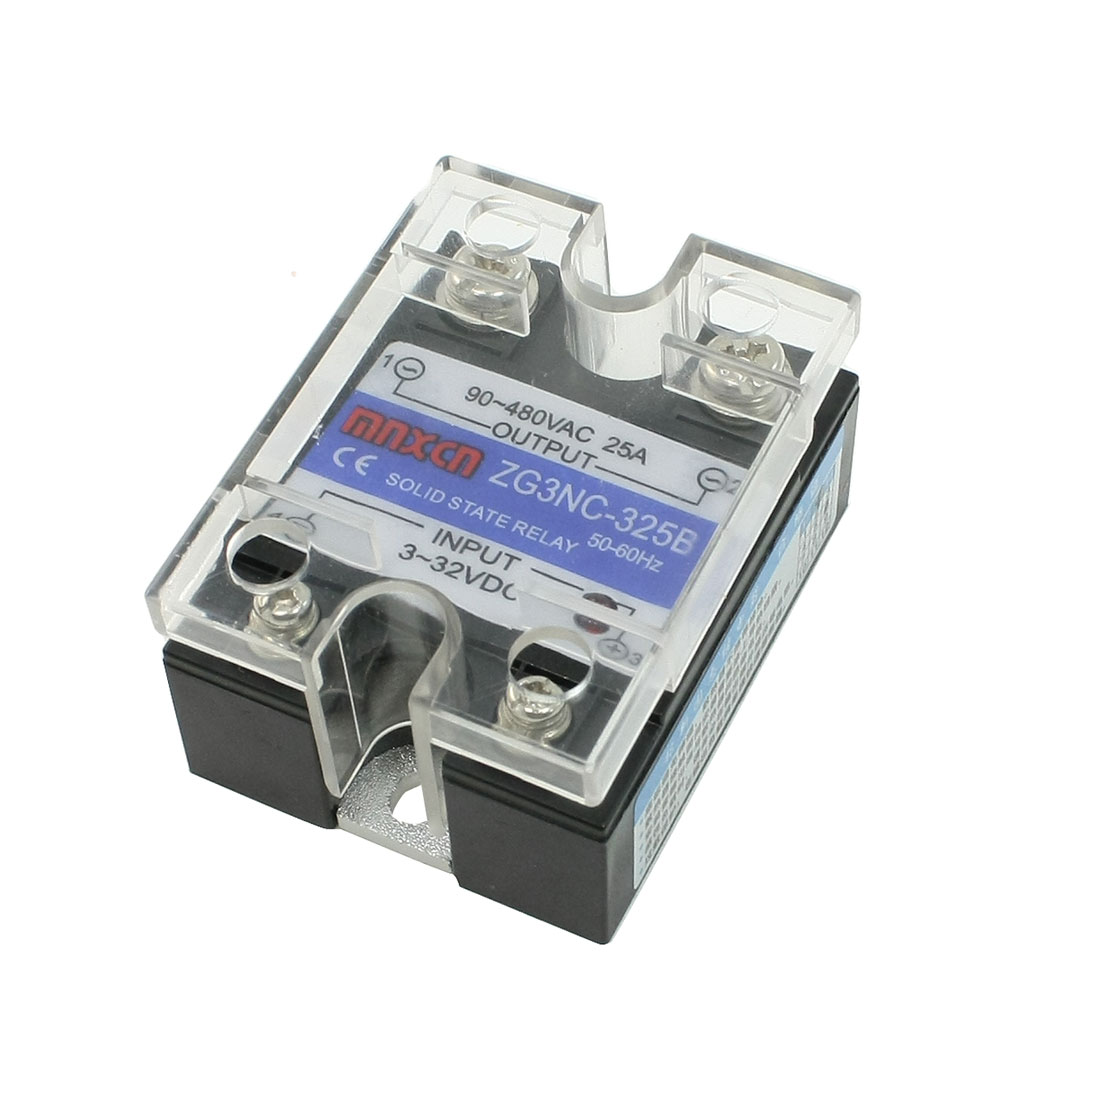 DC to AC Single Phase Solid State Relay ZG3NC-325B Output 90-480V